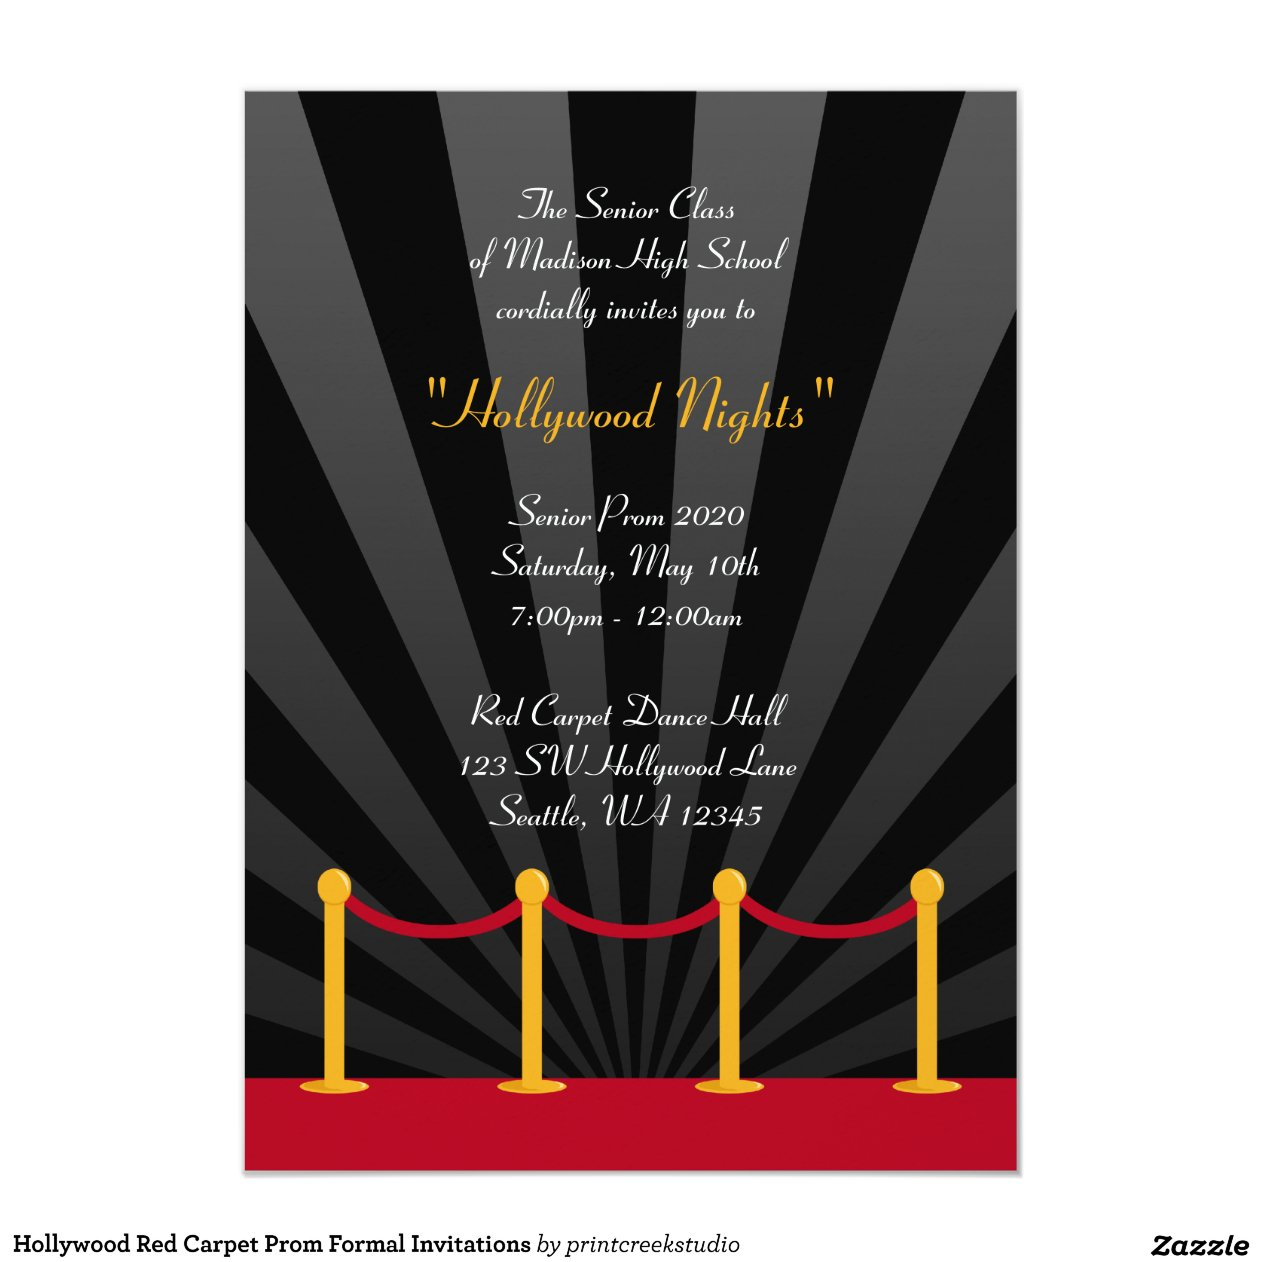 Hollywood Themed Invitations with nice invitations layout